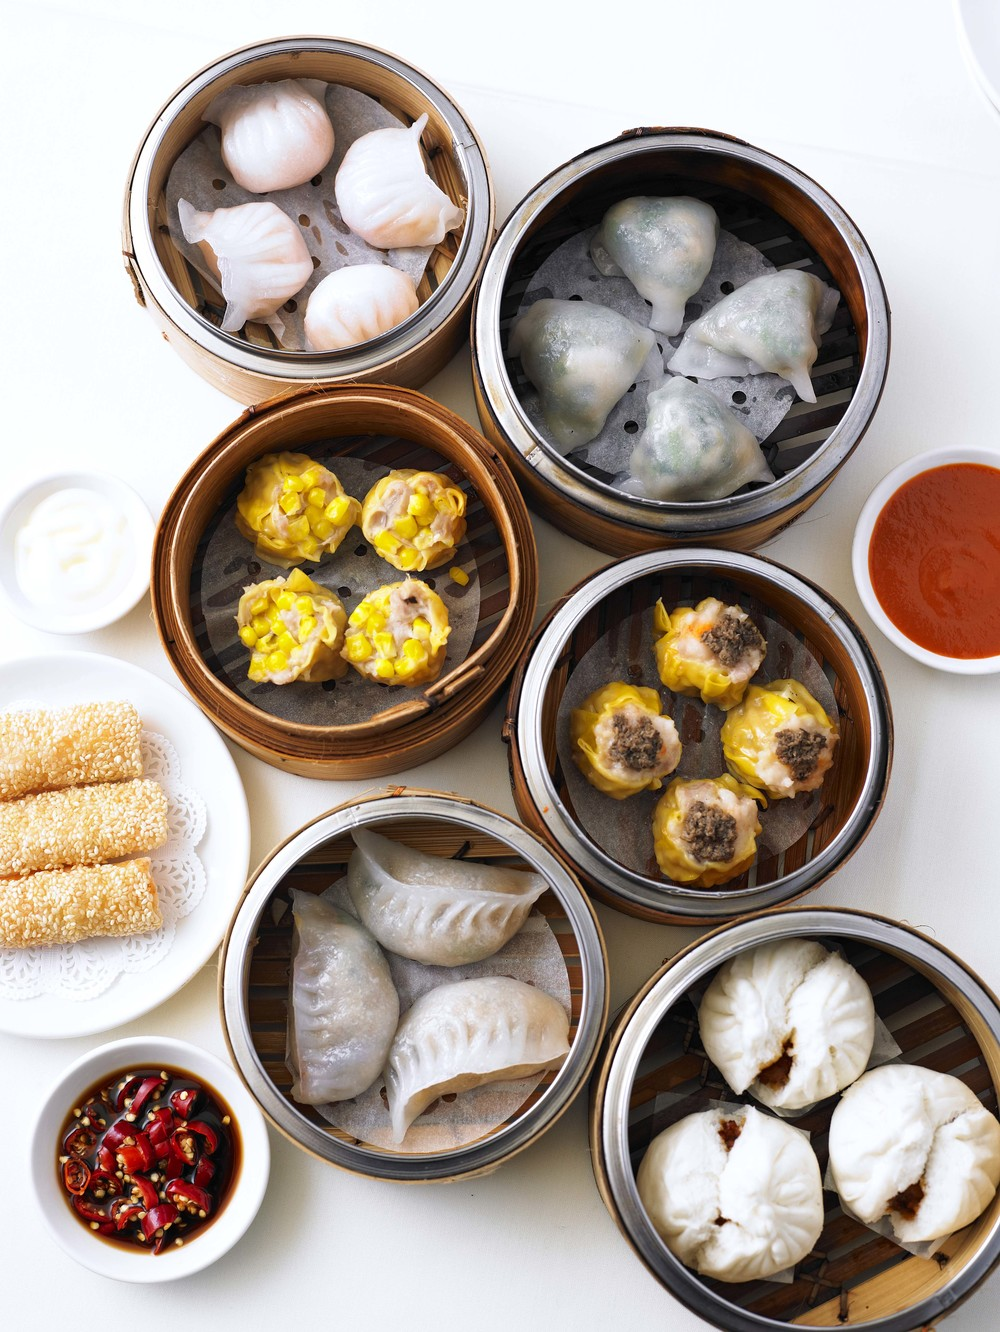 15 best yum cha places in sydney to visit this weekend. Black Bedroom Furniture Sets. Home Design Ideas